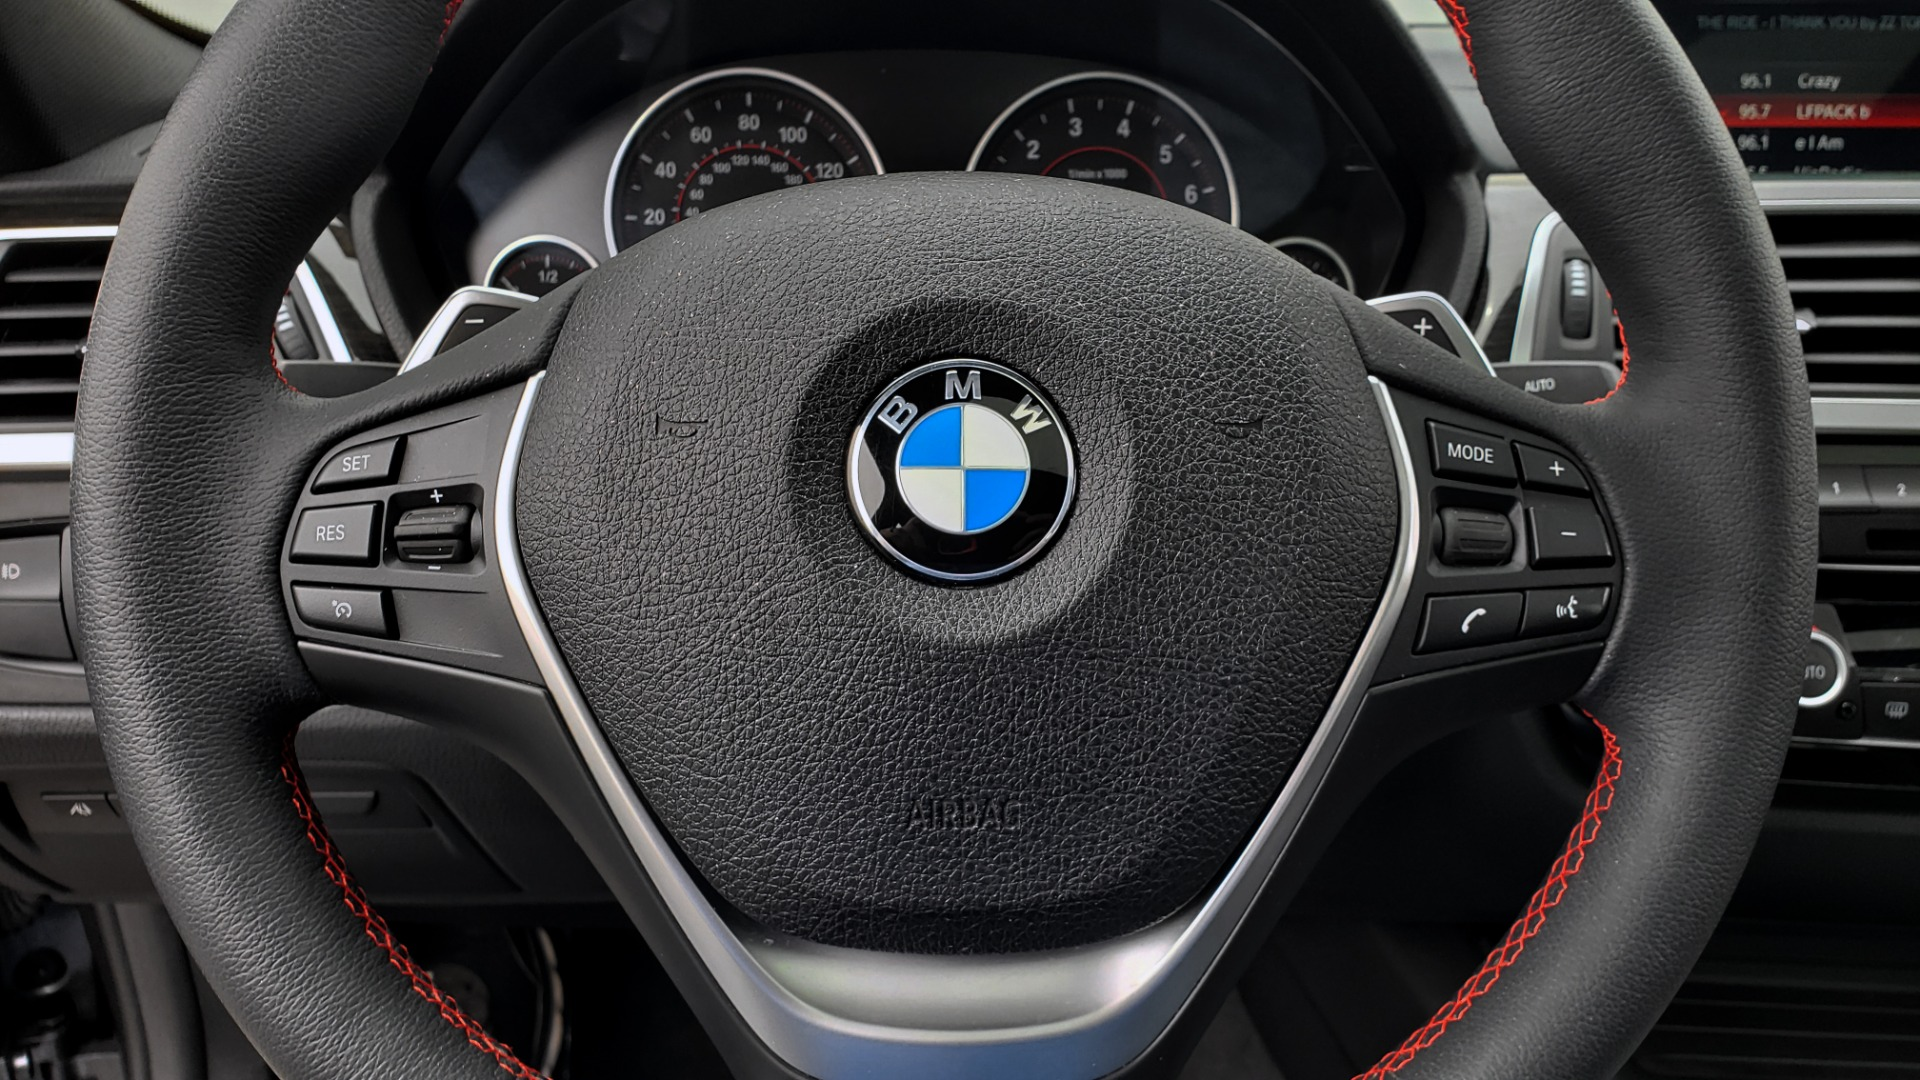 Used 2018 BMW 3 SERIES 330I XDRIVE PREMIUM / CONV PKG NAV / BLIND SPOT / HTD STS / REARVIEW for sale $22,695 at Formula Imports in Charlotte NC 28227 39